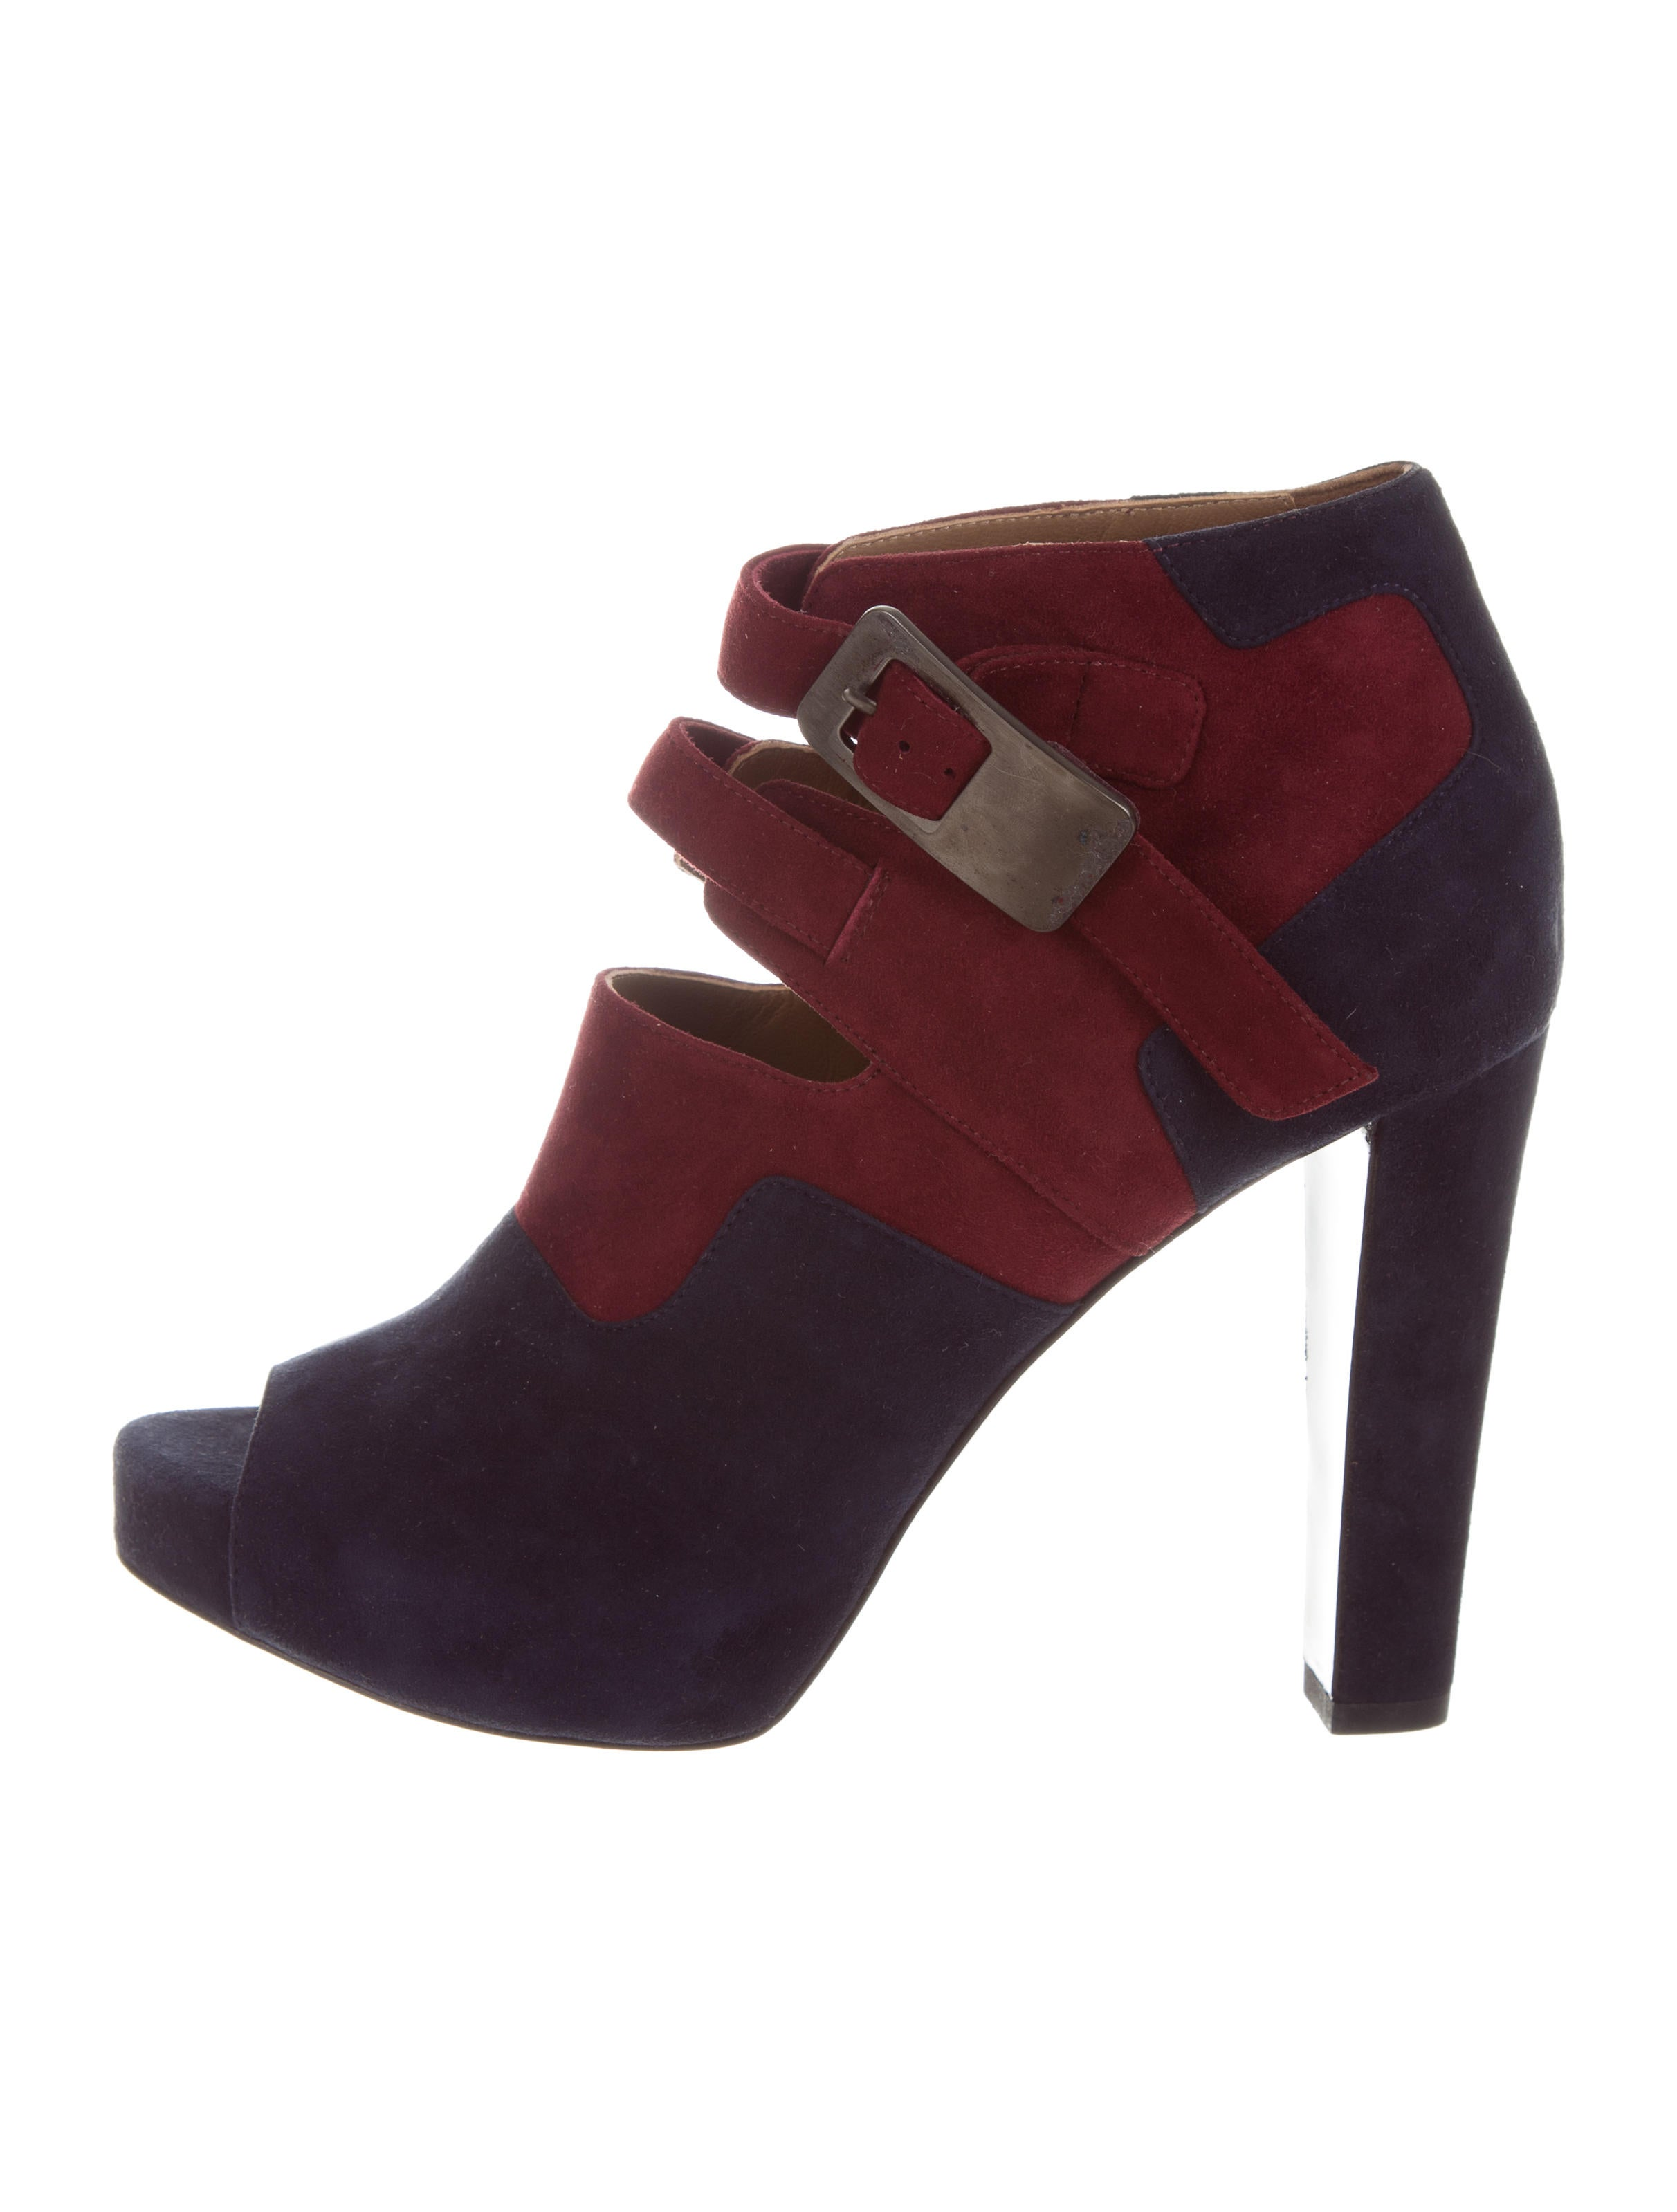 outlet online shop outlet sast Hermès Suede Peep-Toe Ankle Boots outlet genuine free shipping discount xArA2k